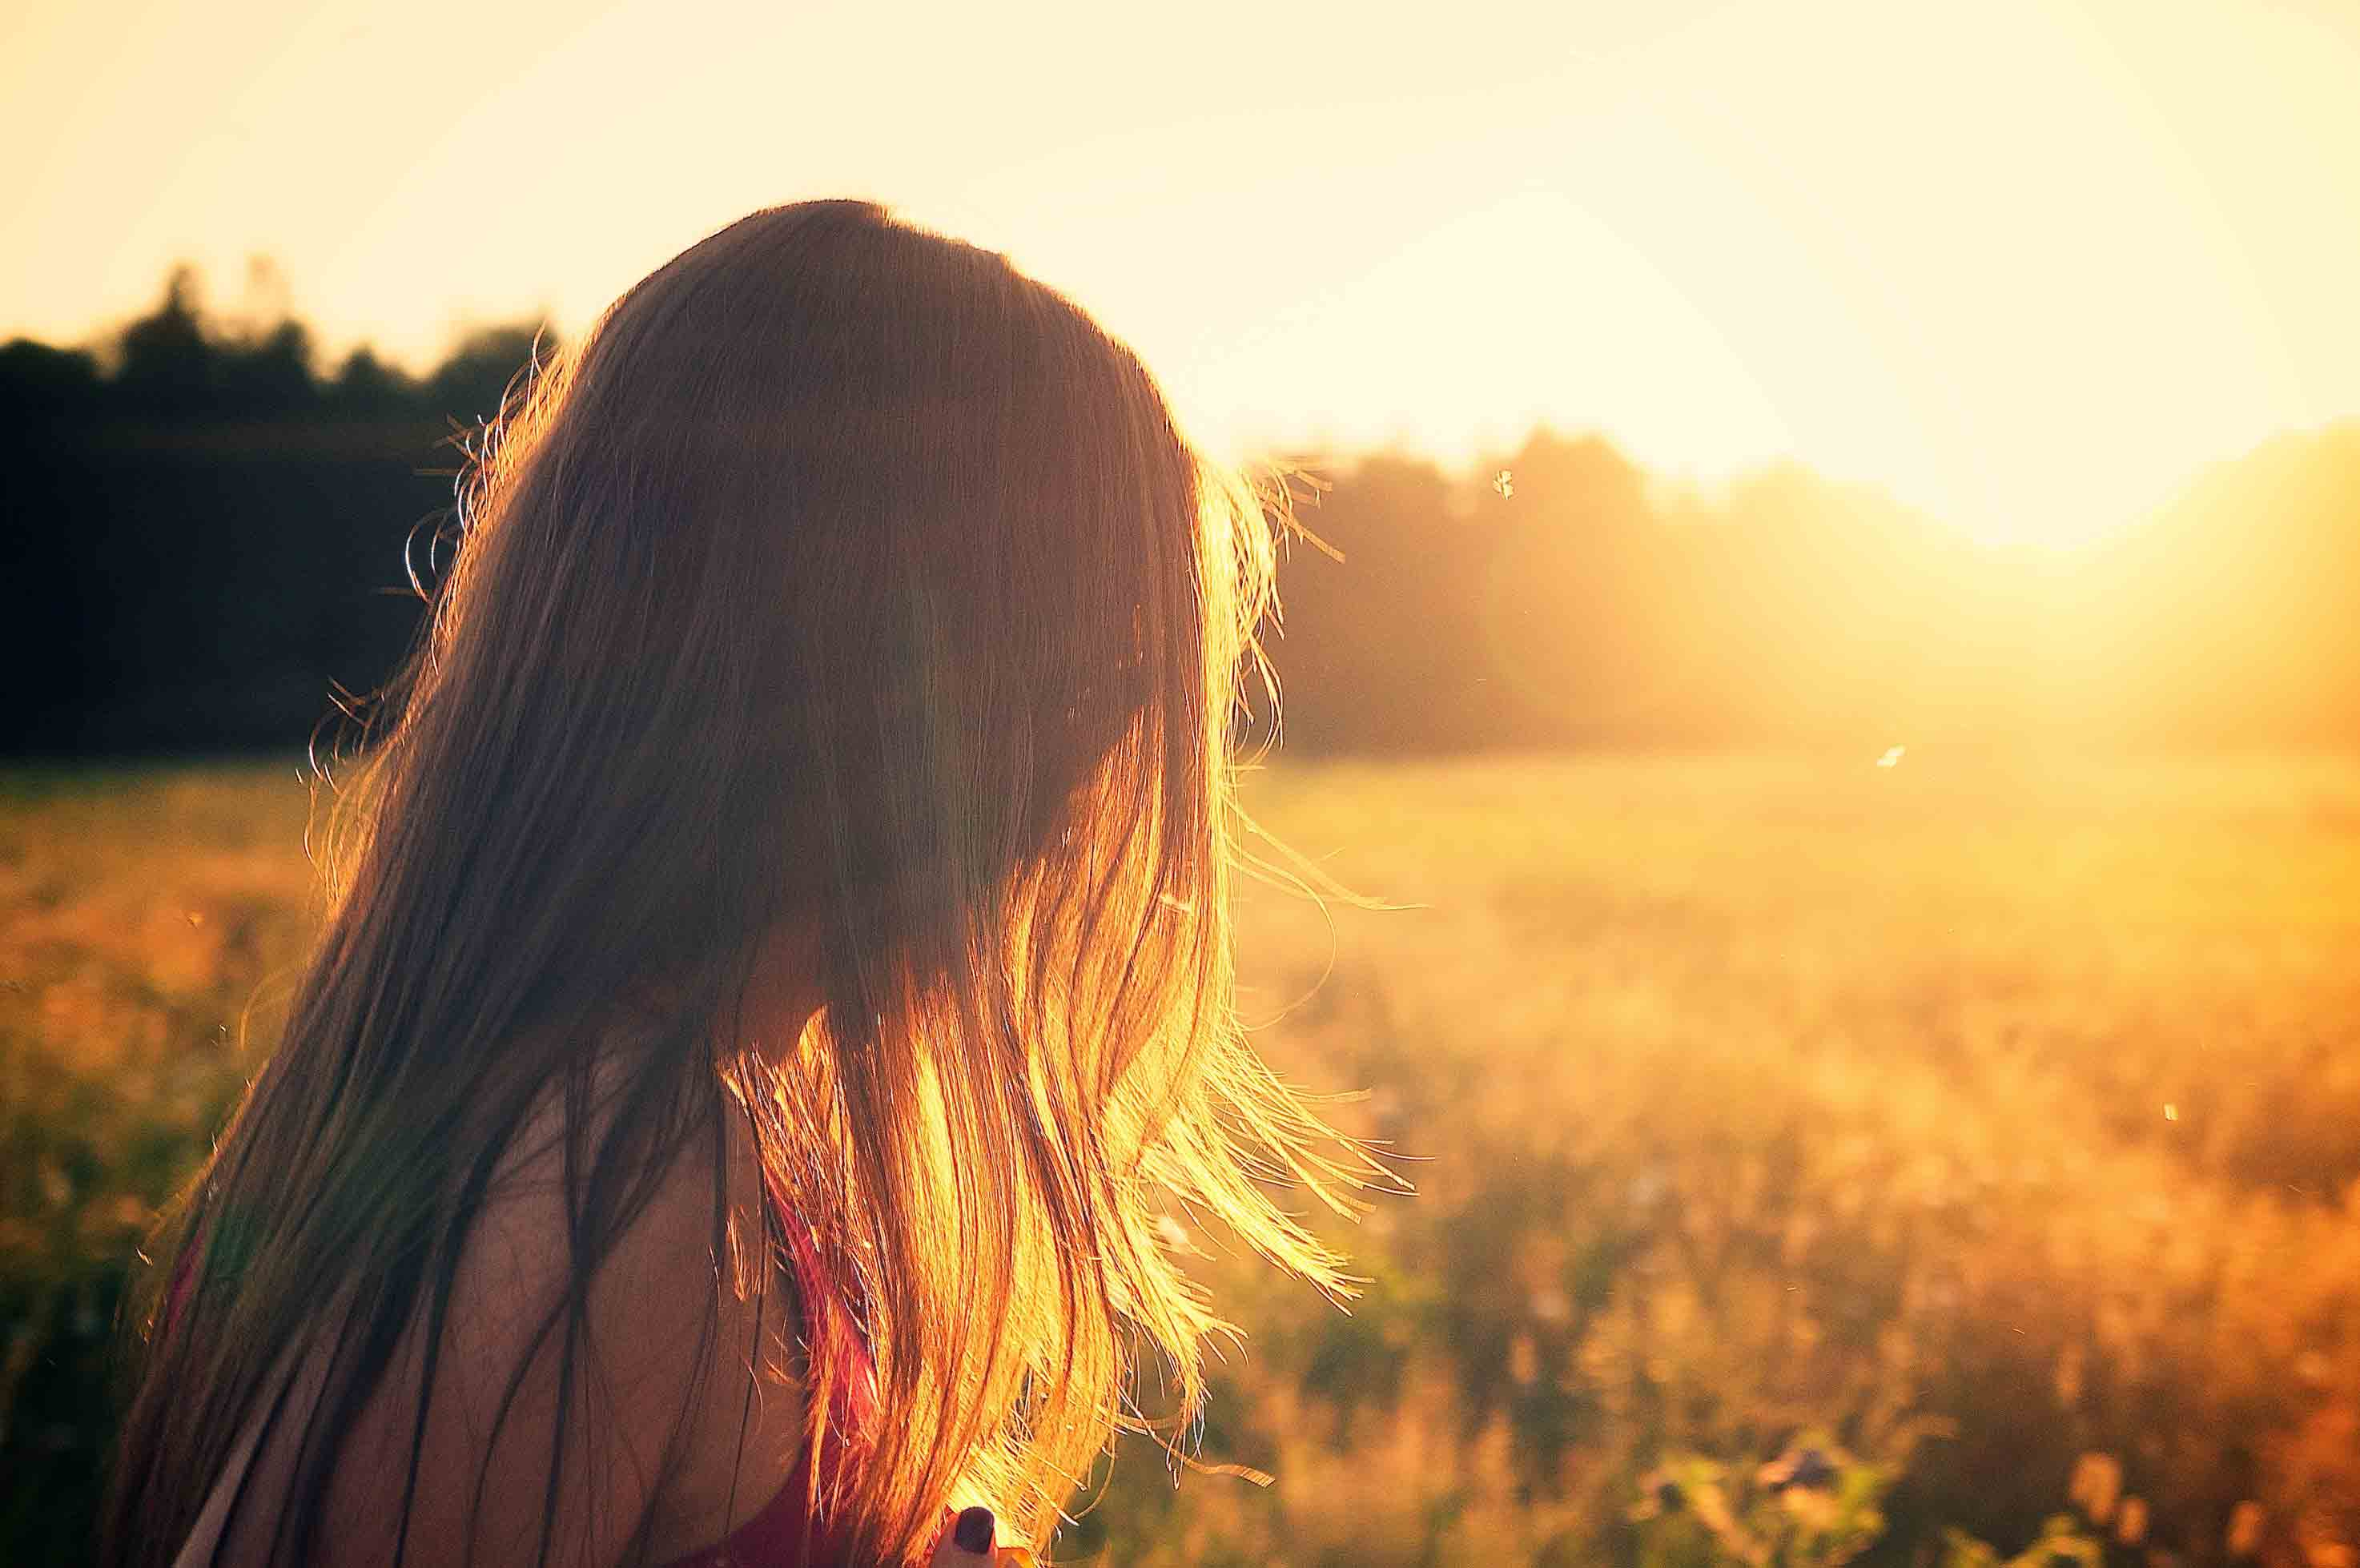 Profile of girl with long hair in sunshine. Depression counseling in Columbus, Ohio is available at Blue Boat Counseling.